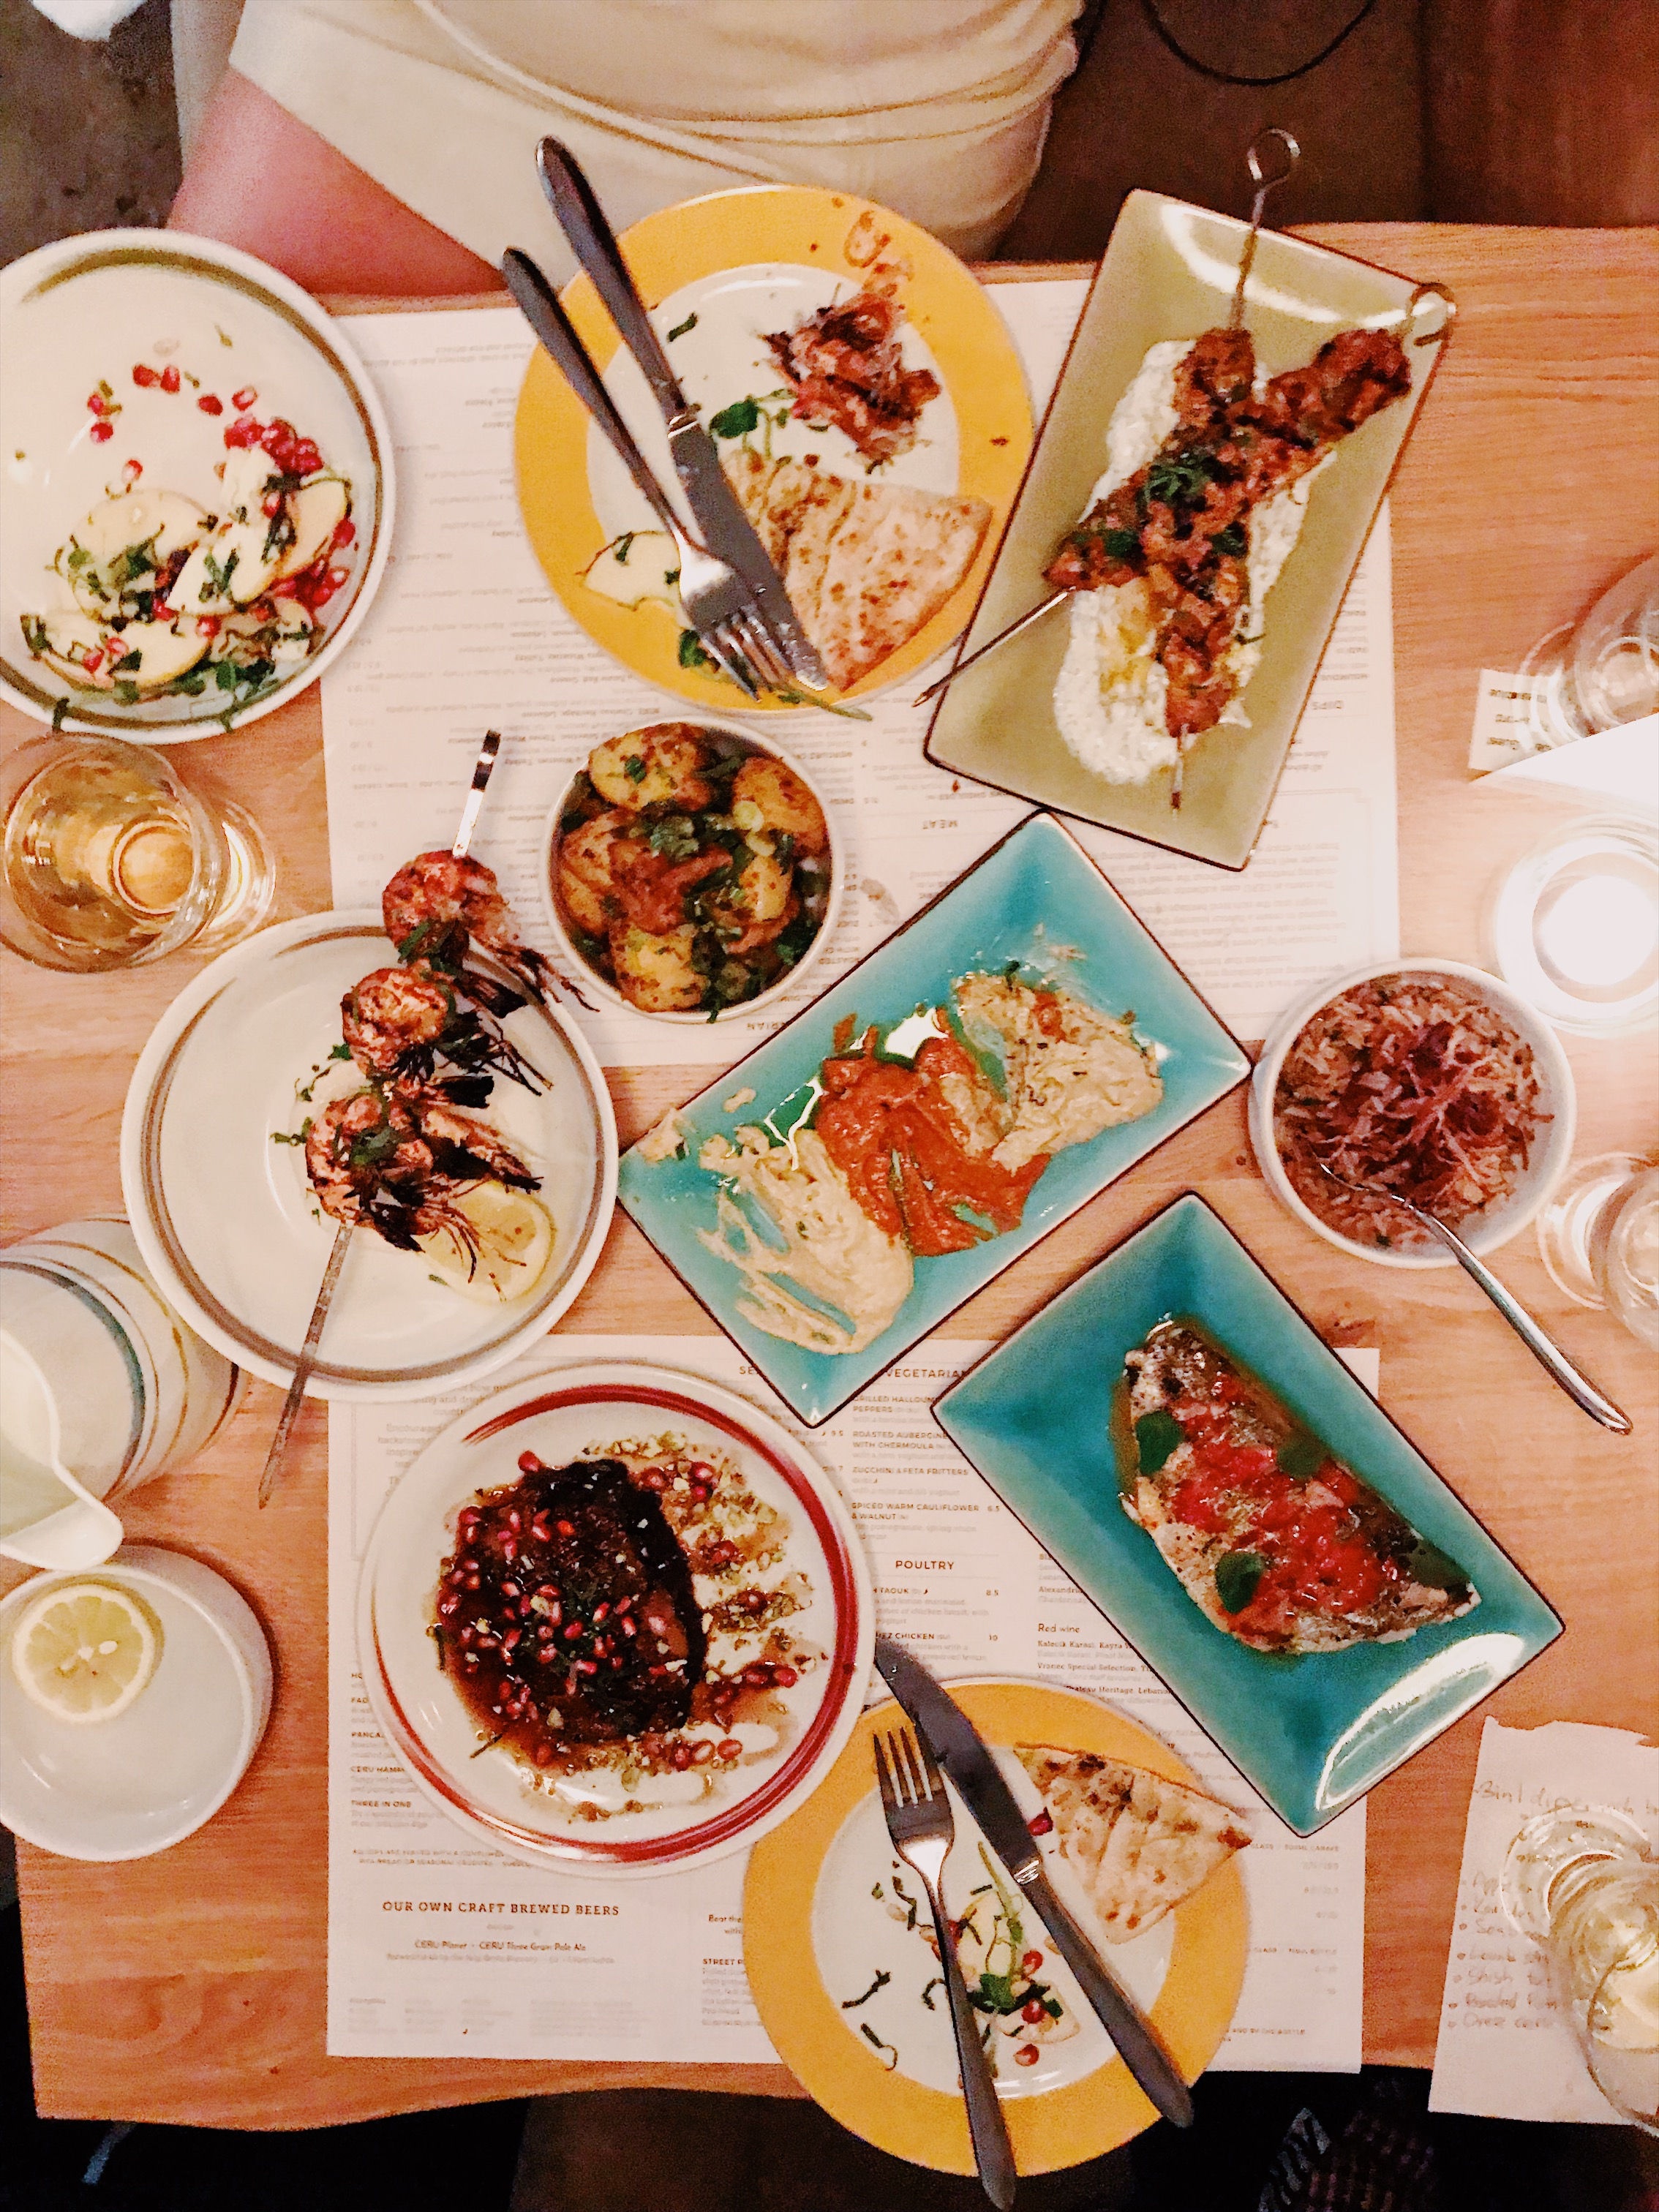 The perfect middle-eastern foodie spread for two